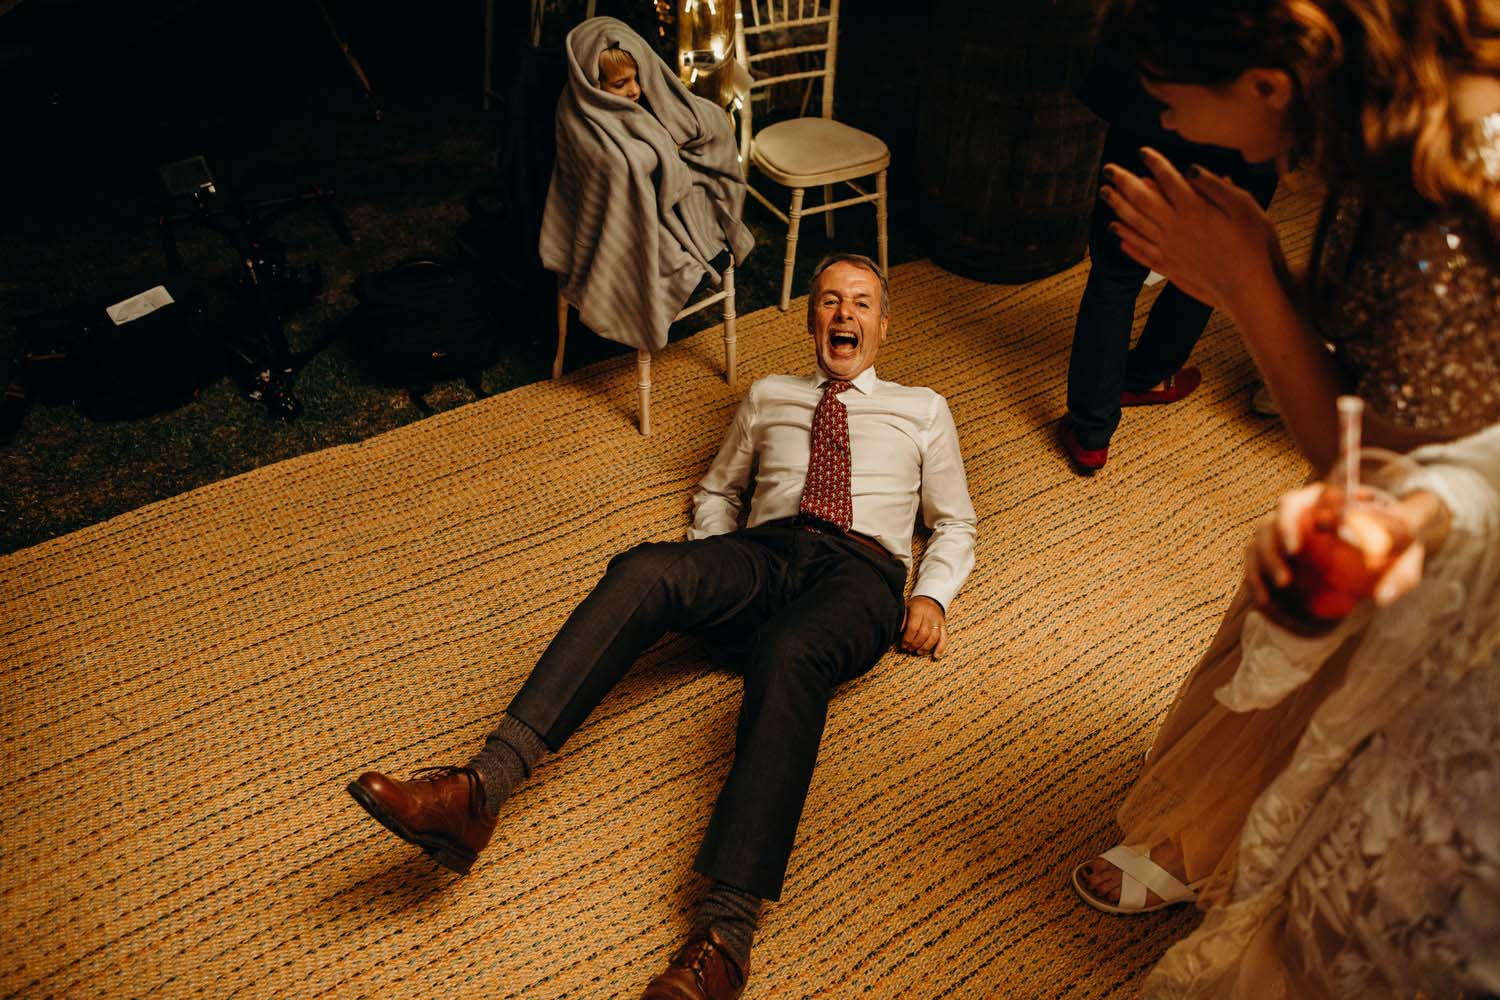 man falls over at wedding